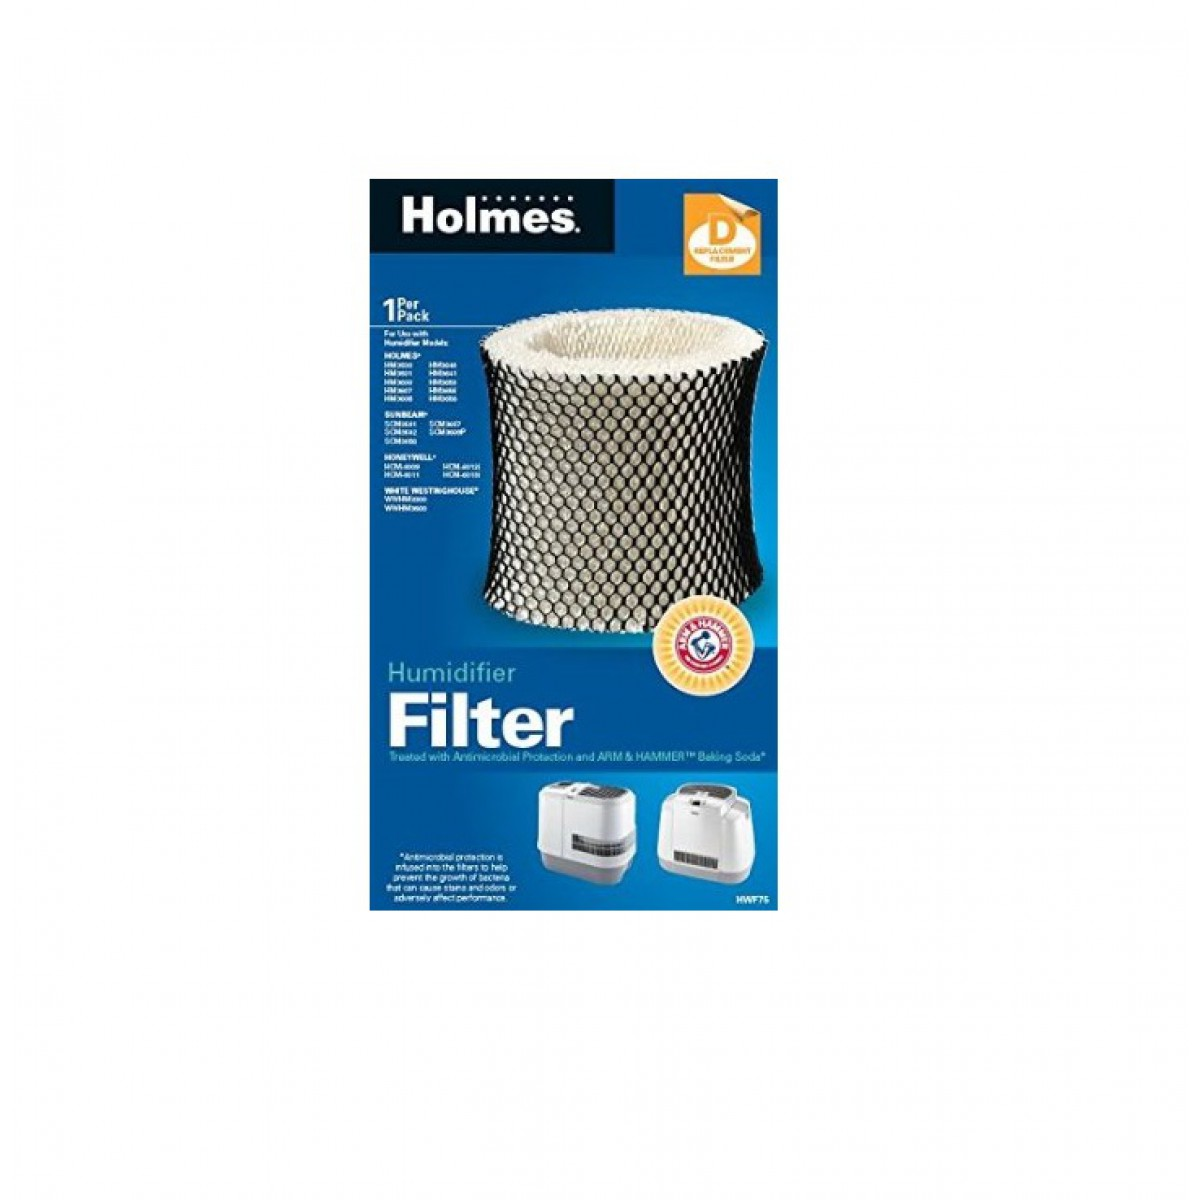 Home > Holmes HWF75PDQ U Humidifier Wick Filter D for Holmes models  #015190